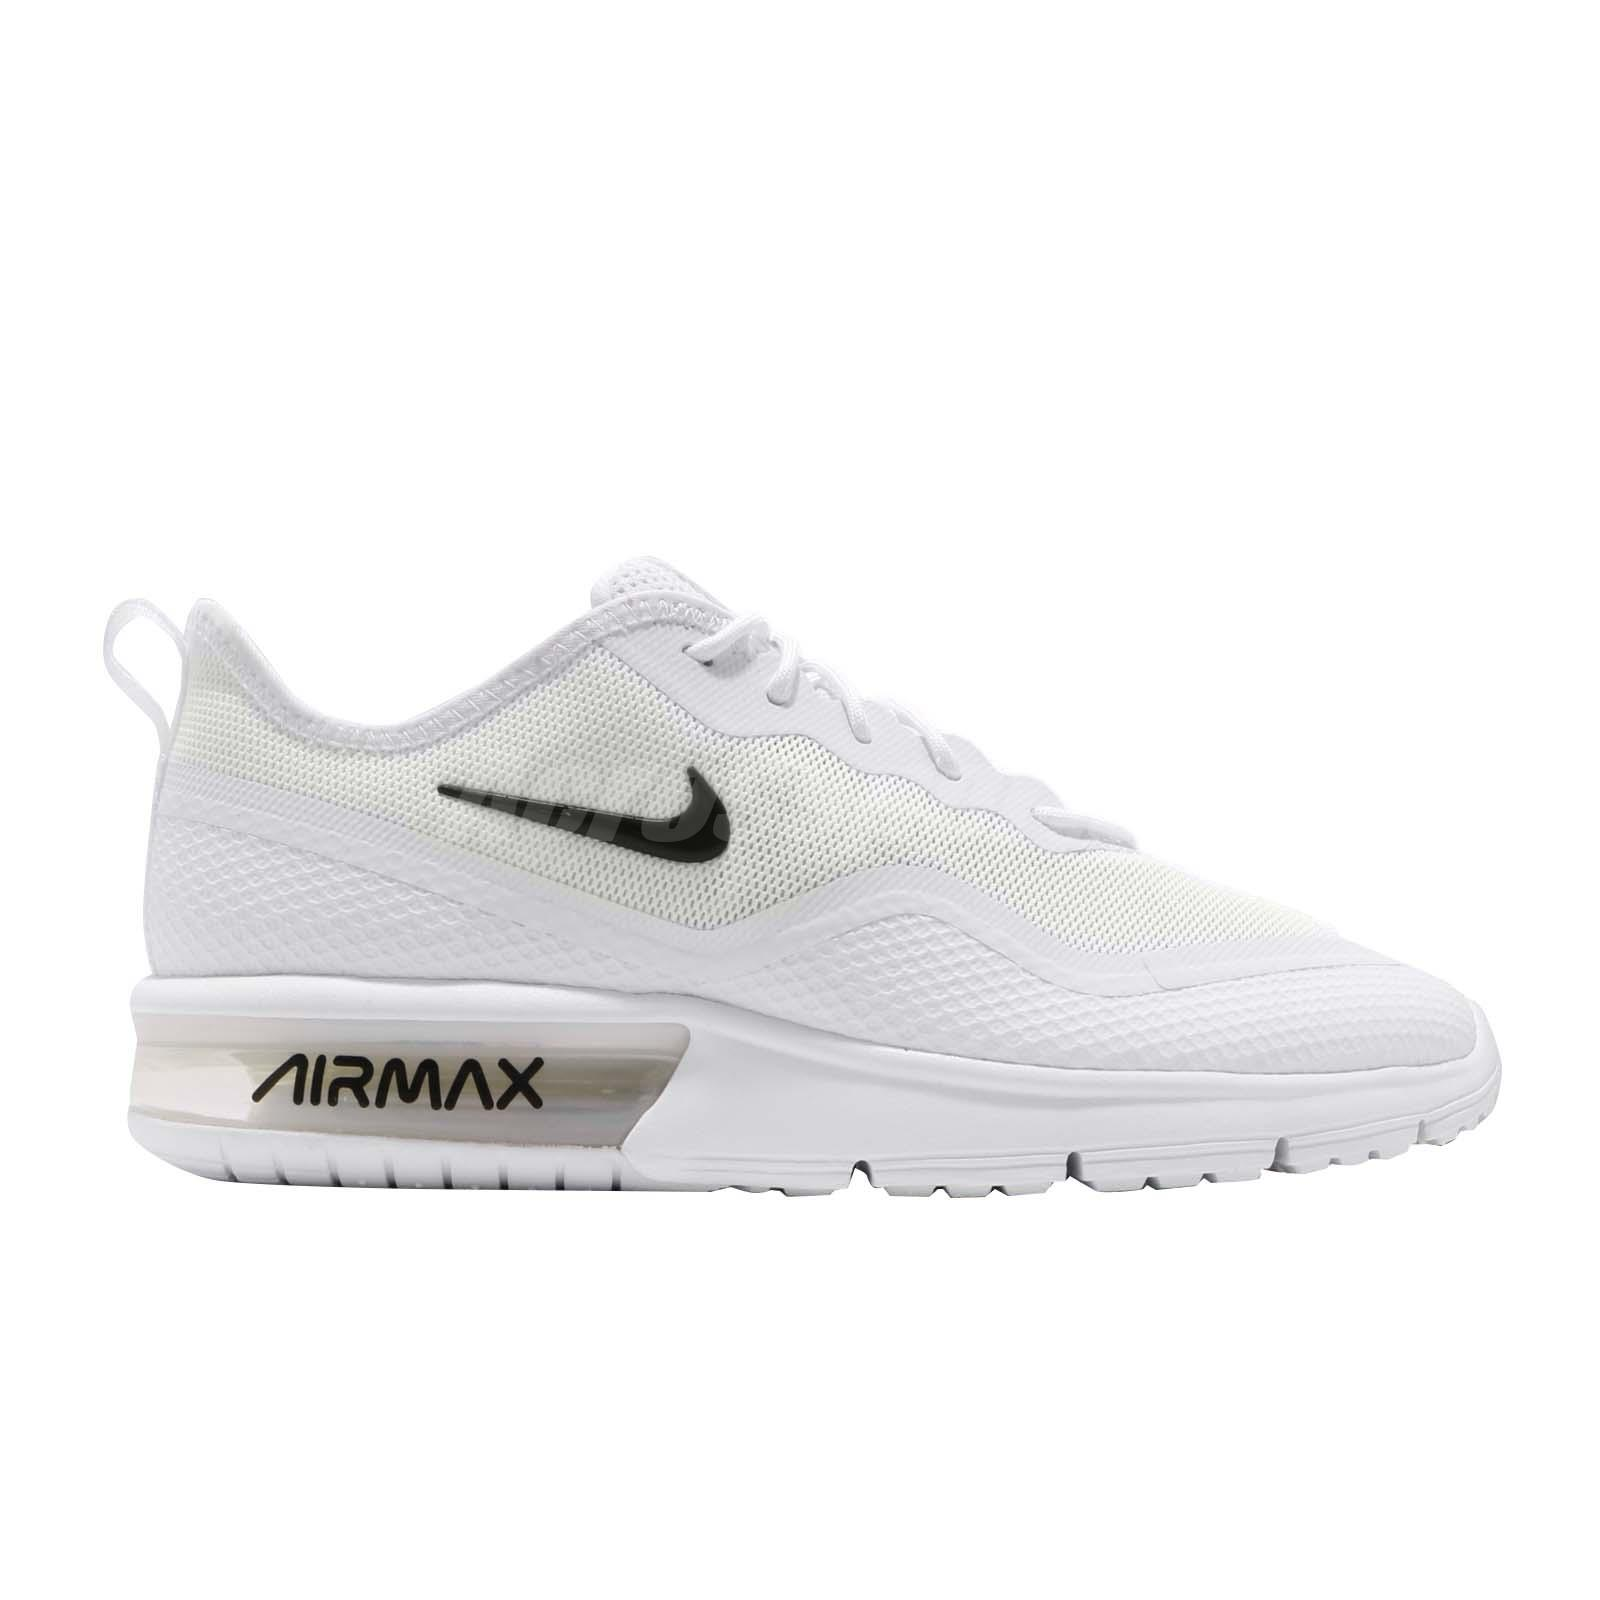 56785820d2 Nike Air Max Sequent 4.5 White Black Men Running Shoes Sneakers ...